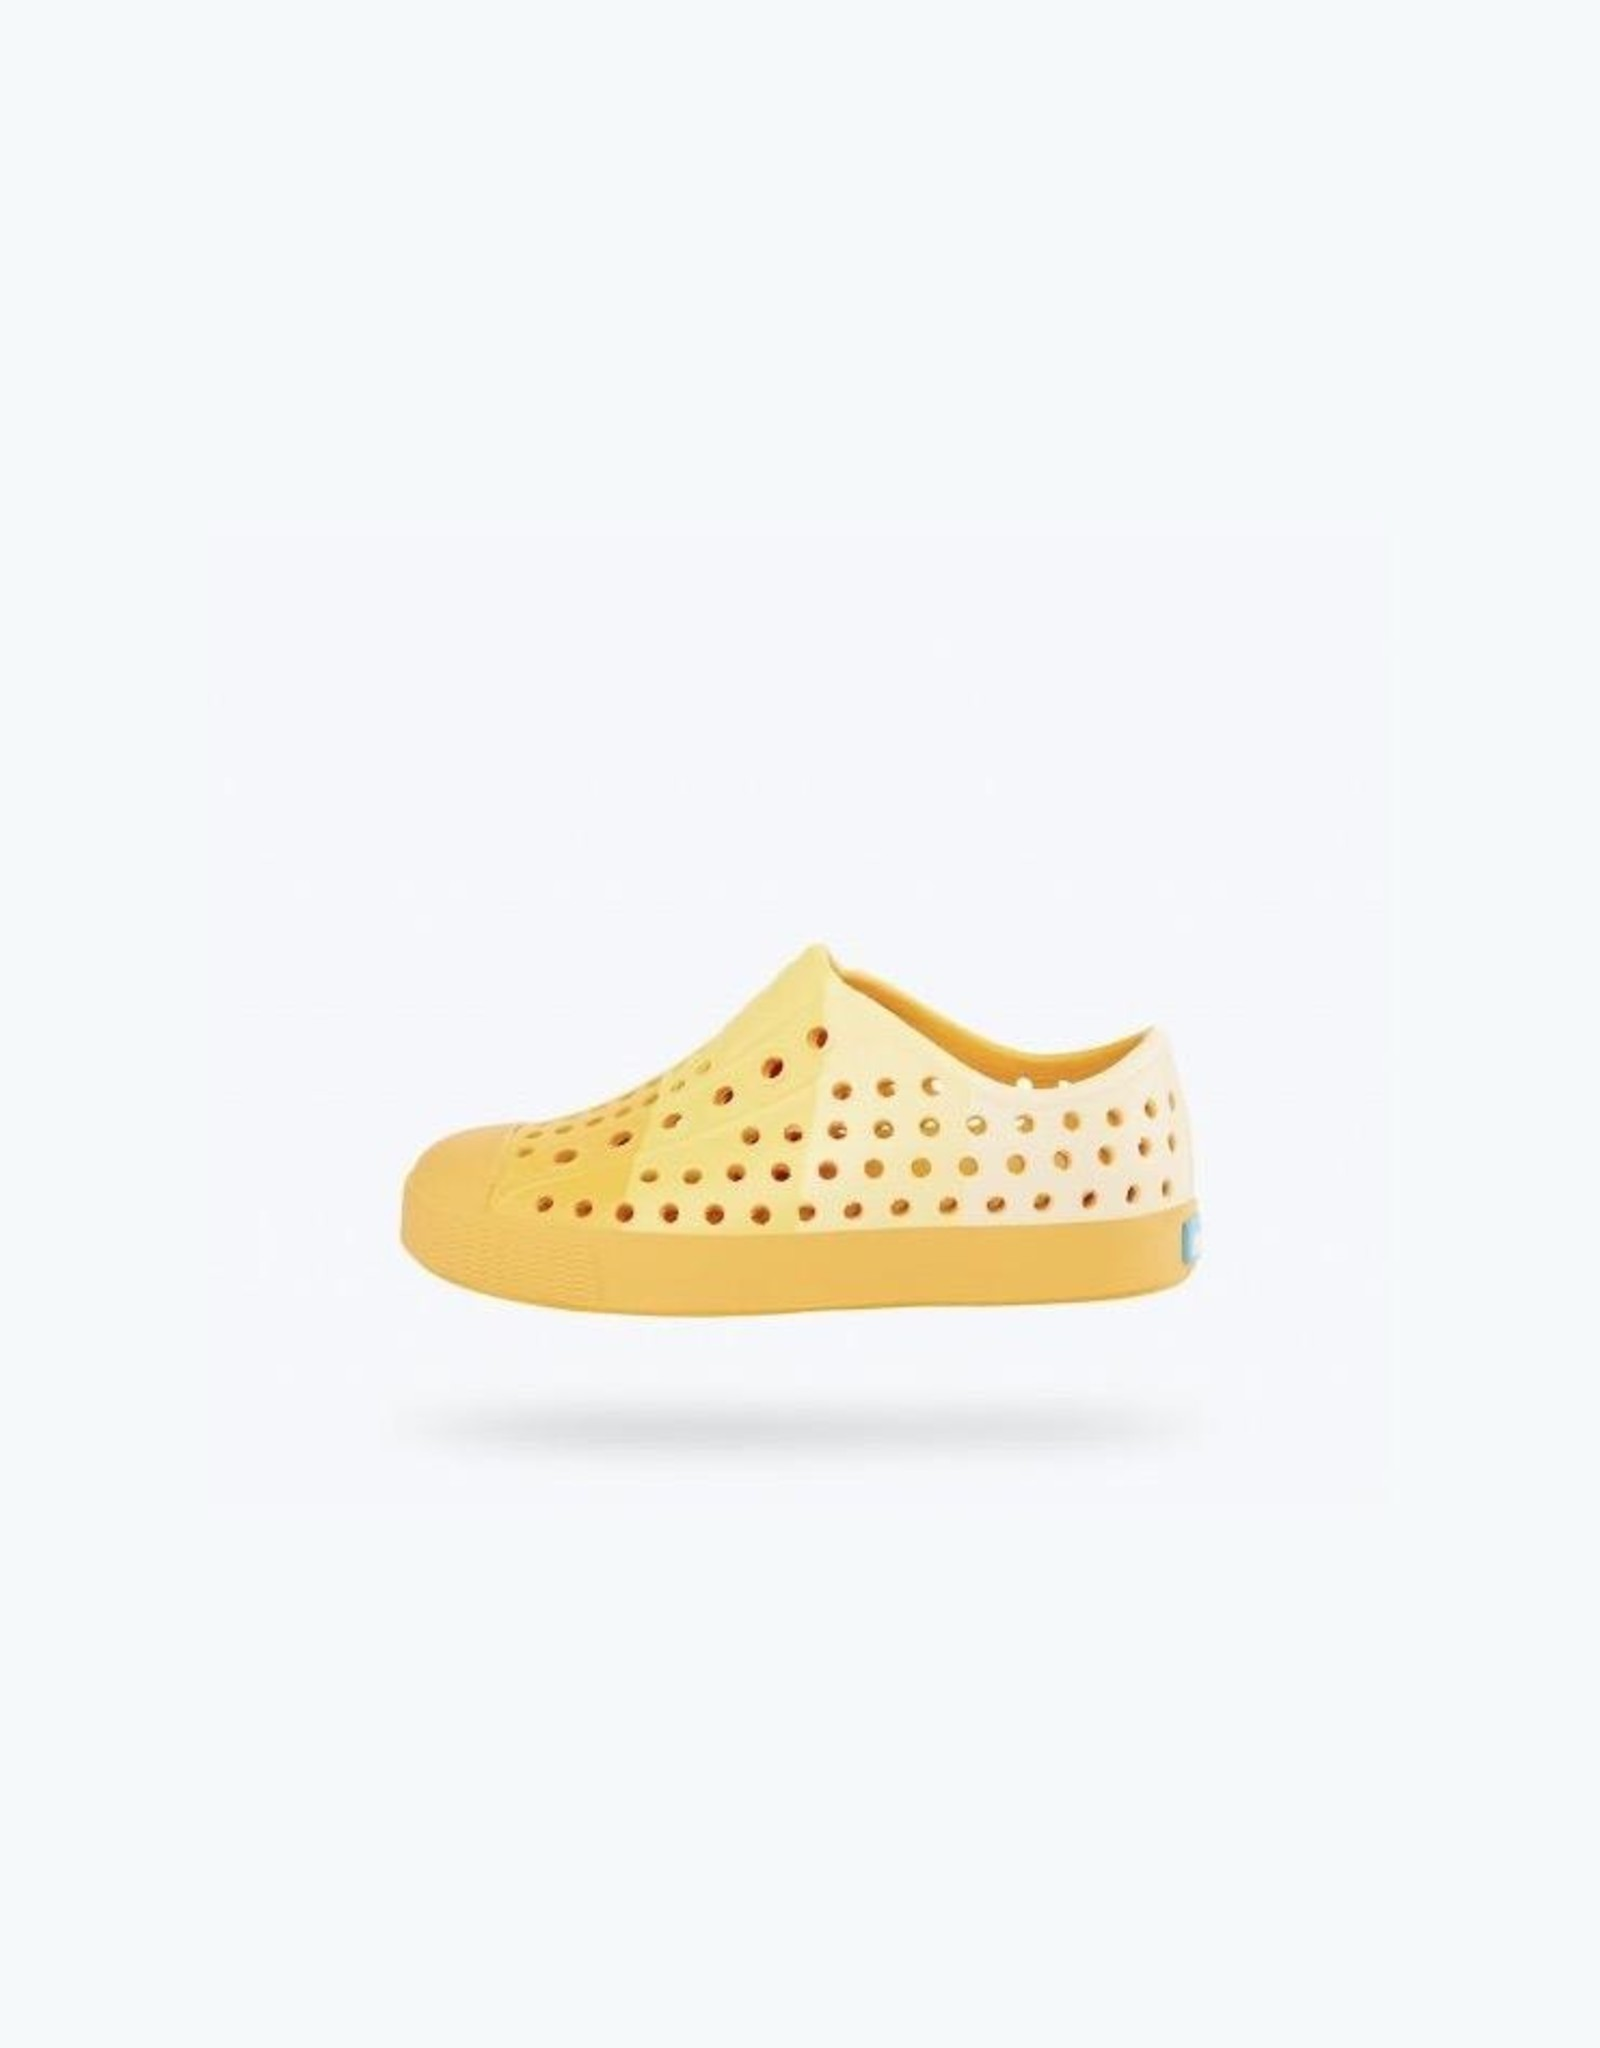 Native Shoes Crayola® Block Child Youth / Junior in Sunny Side Up Yellow/ Block Print